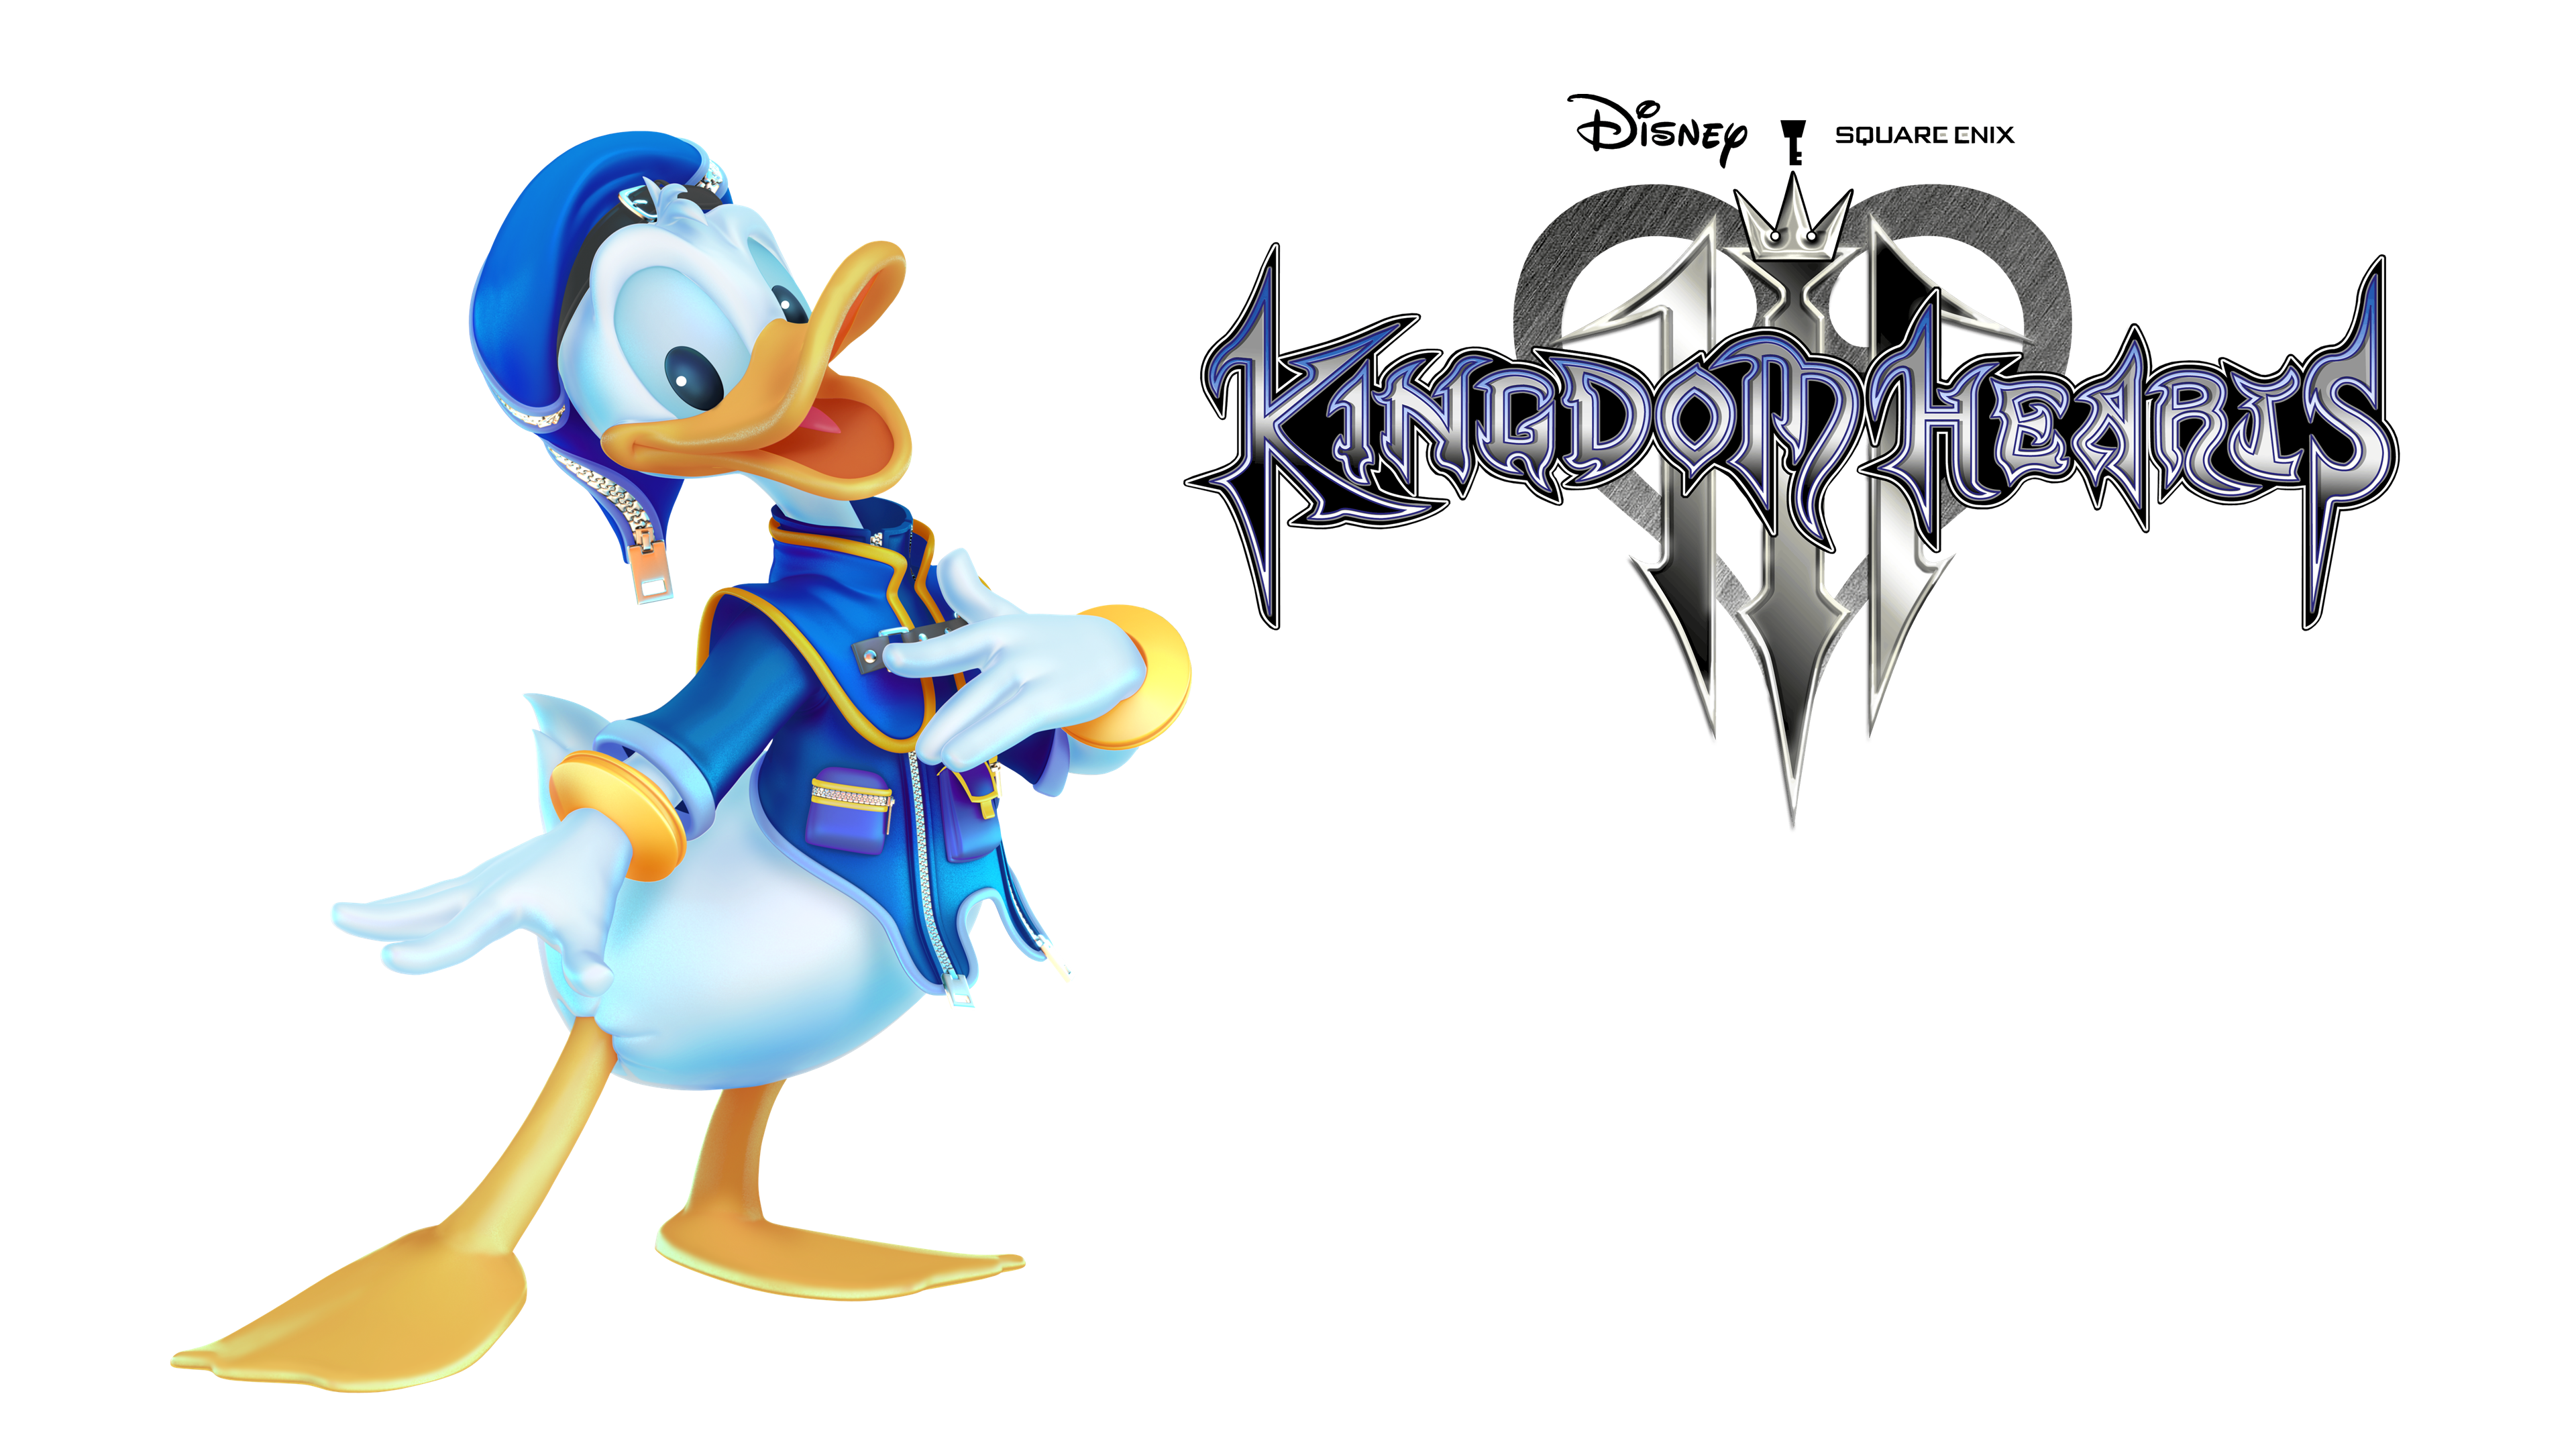 Kingdom Hearts III Wallpaper Donald Duck by Caprice1996 on